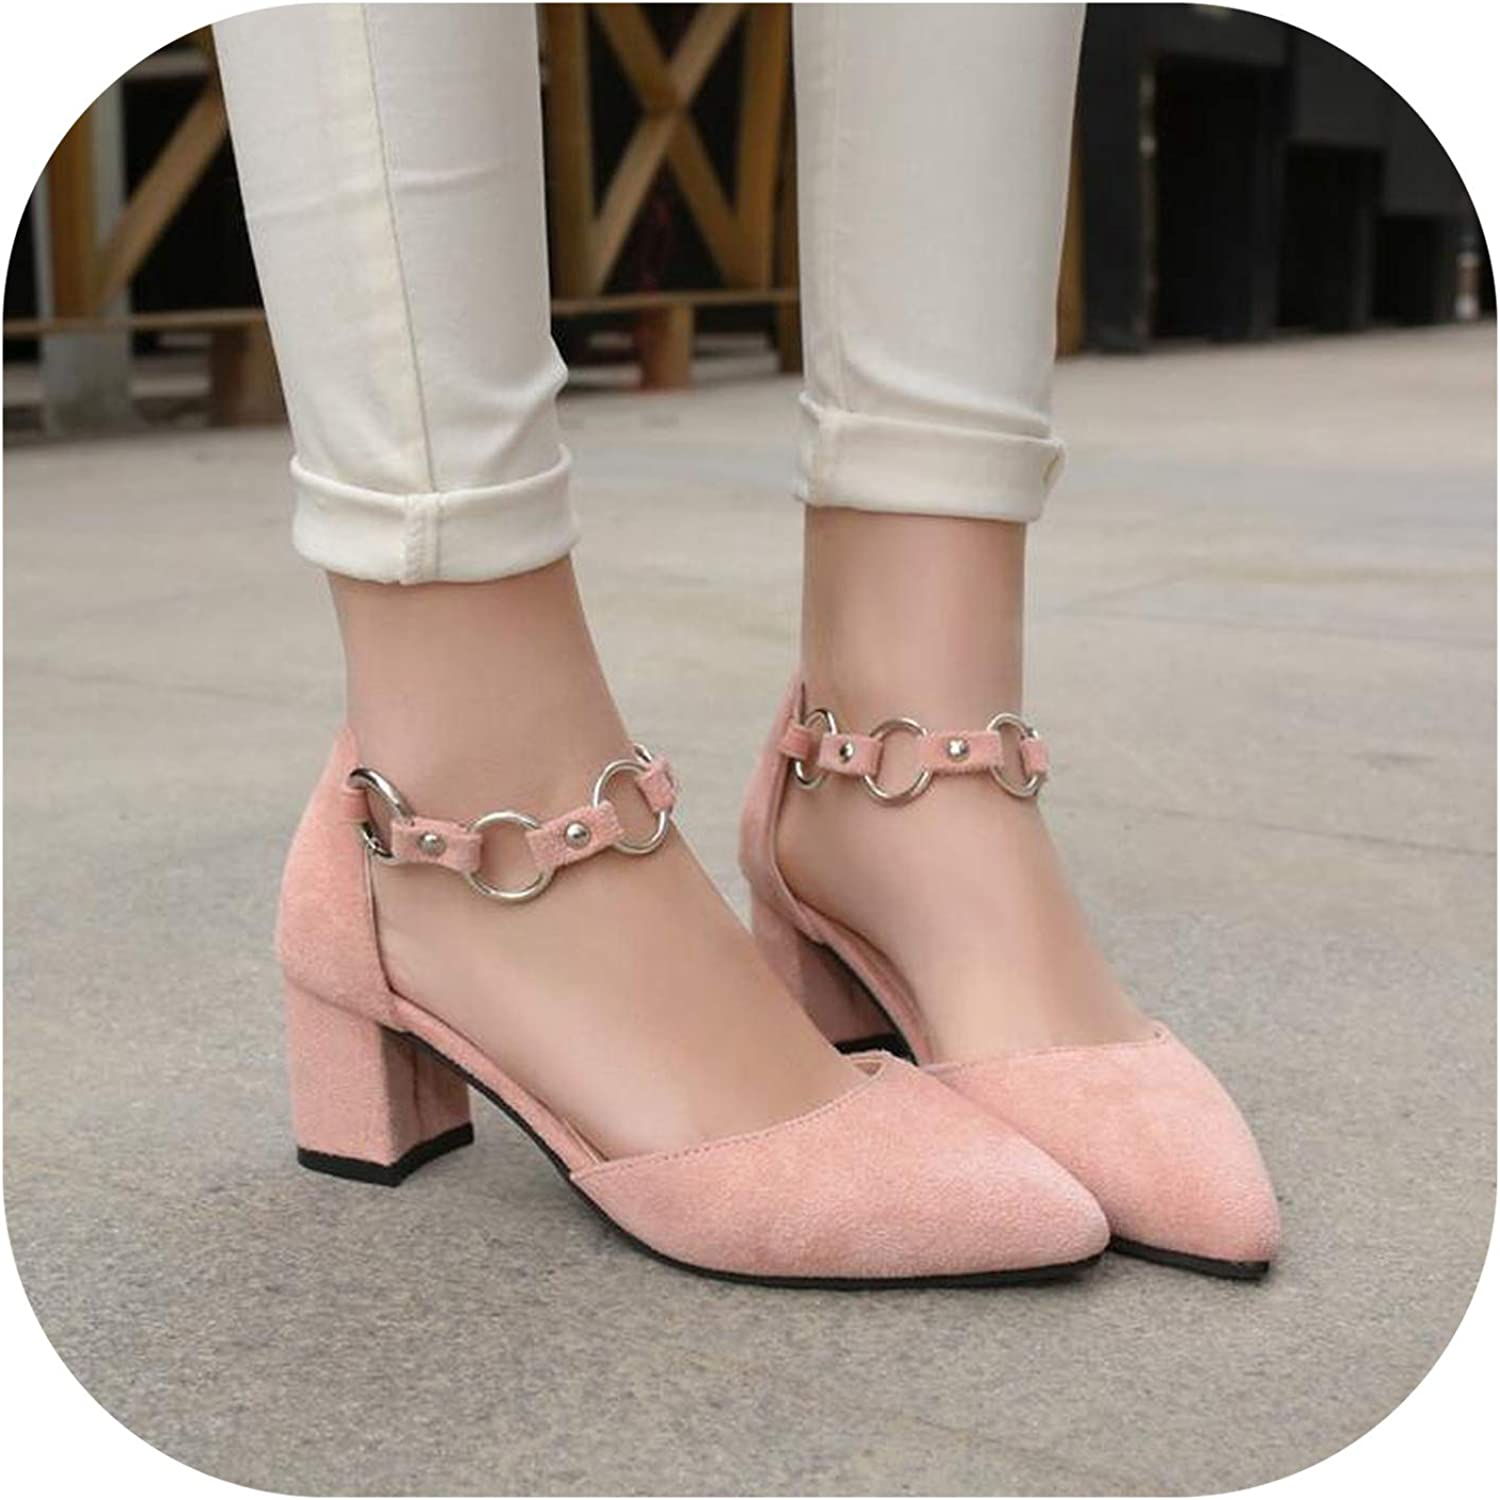 Betterluse Shallow Flats Women Sandals high Heels Women Pointed Toe Metal Summer Women shoes comfty Casual Sandals